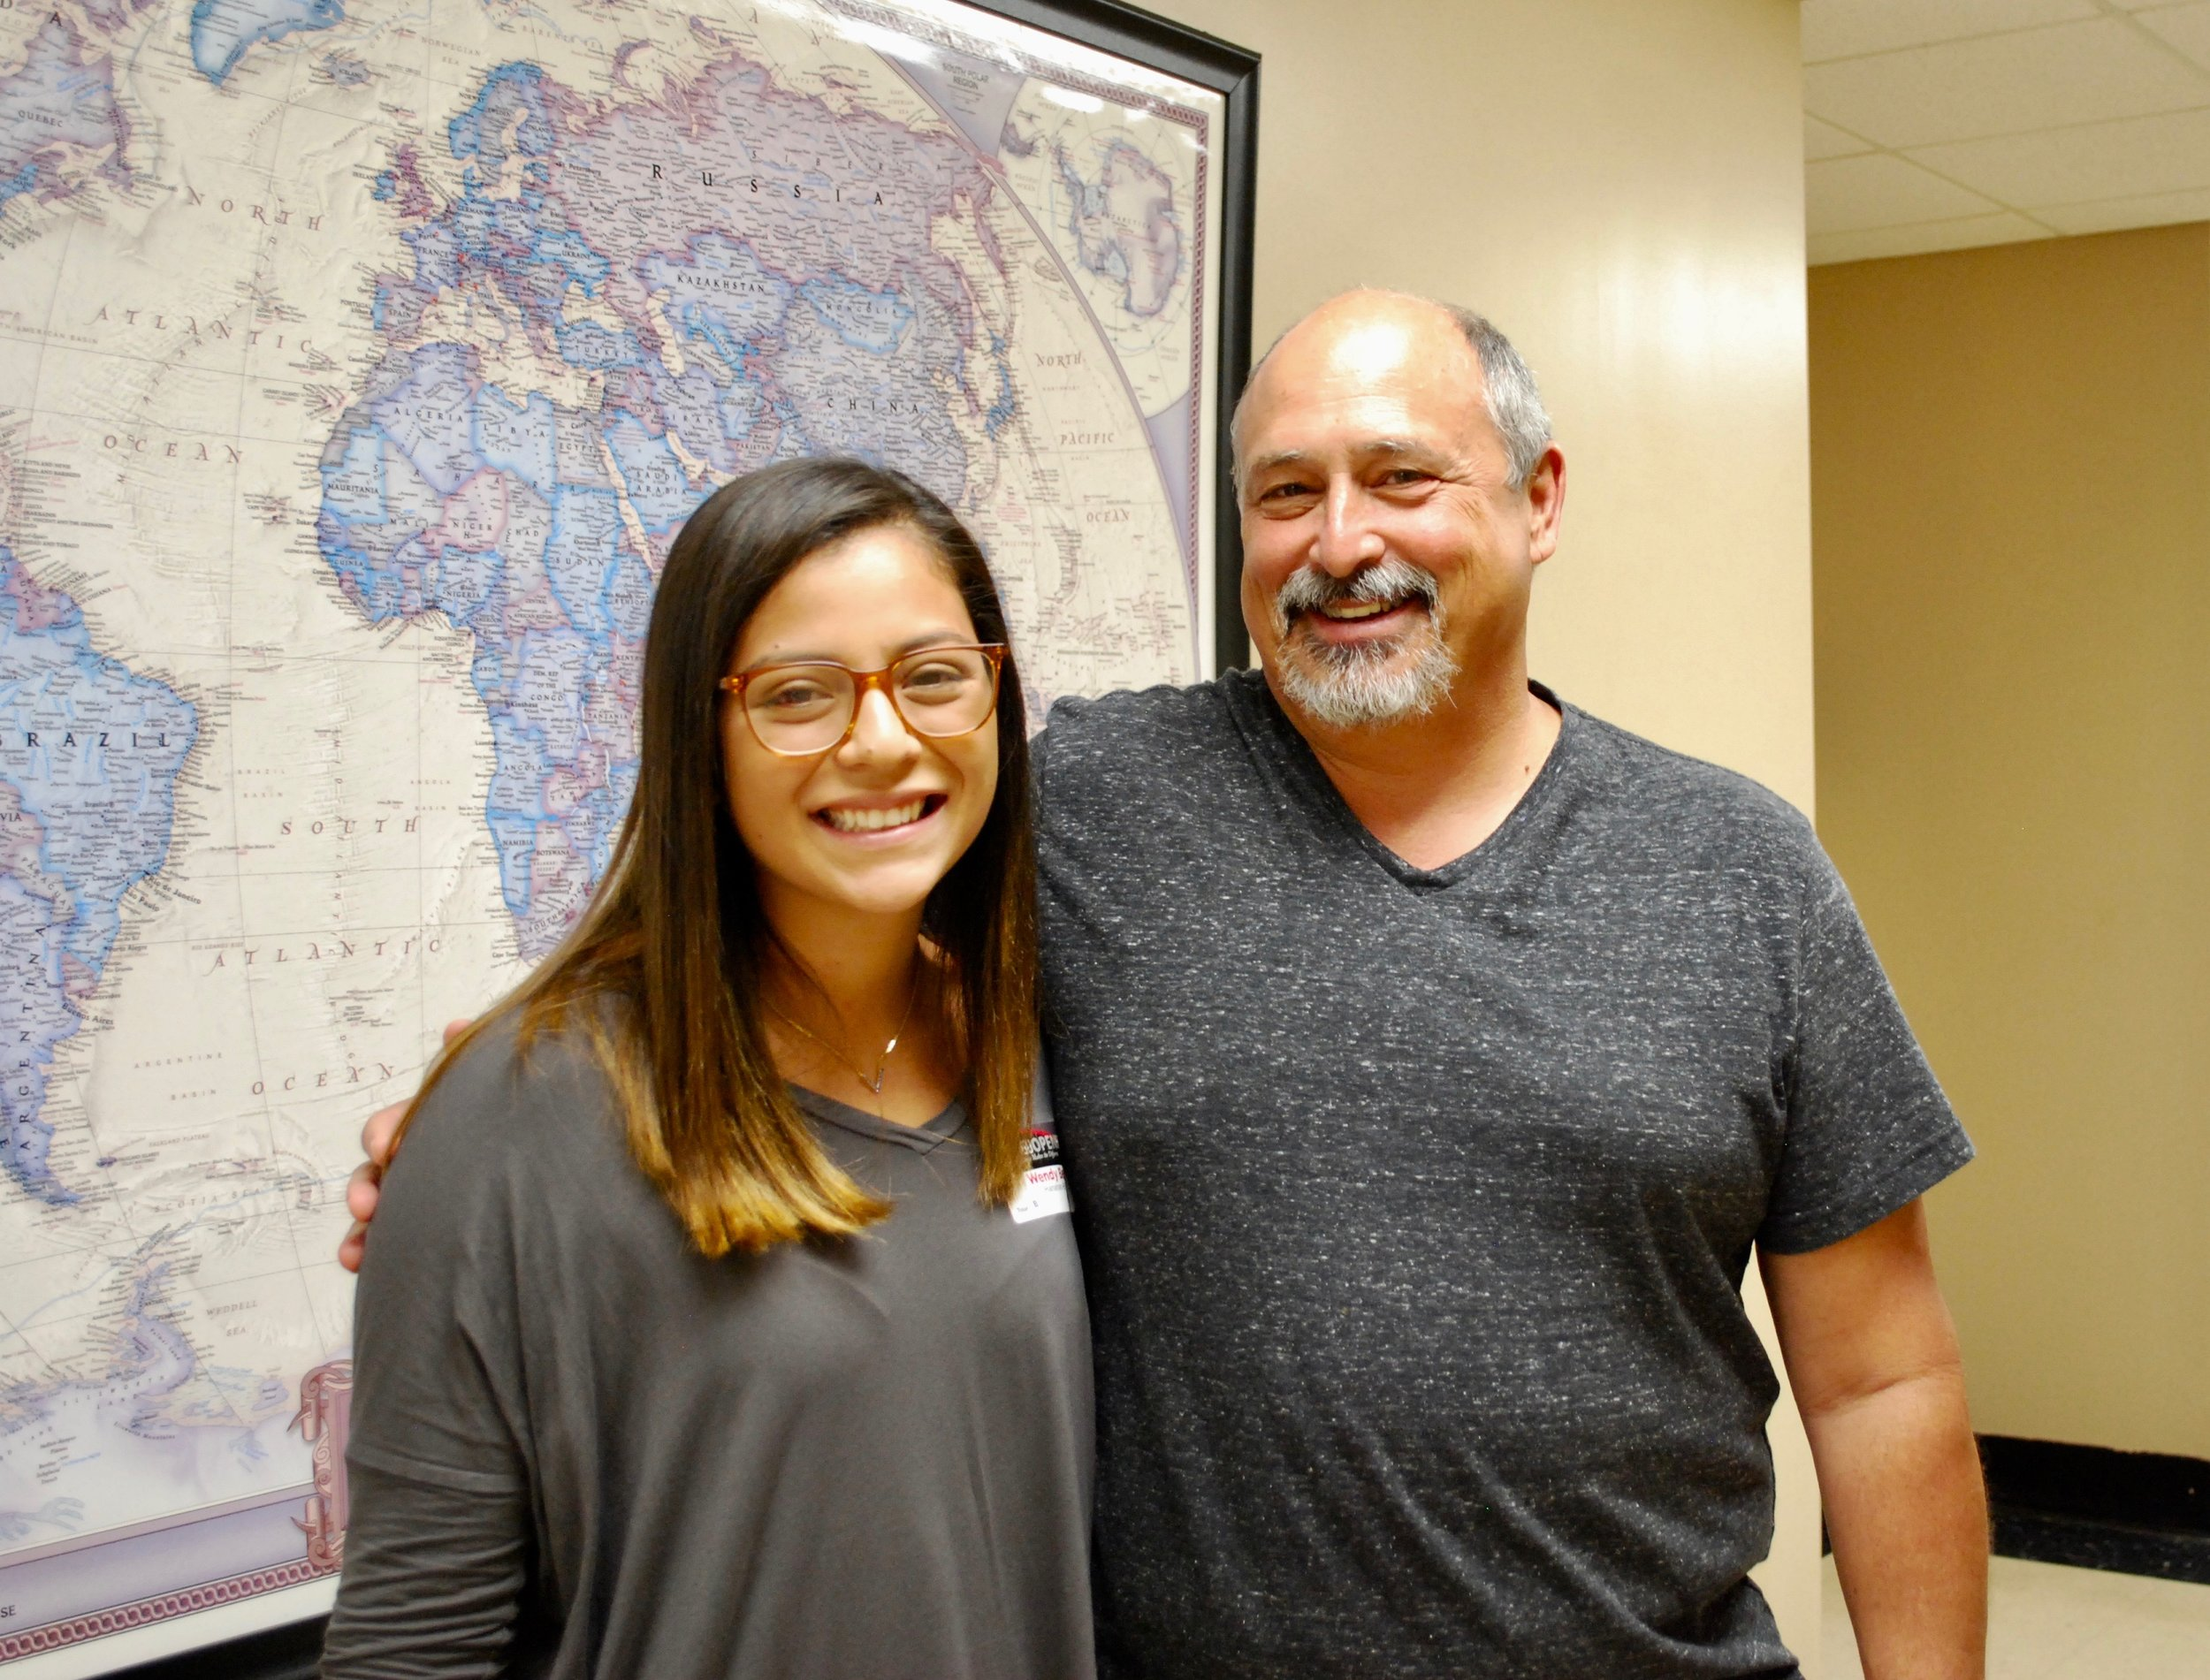 Wendy, an upcoming freshman, and her dad, find their way around the student center.